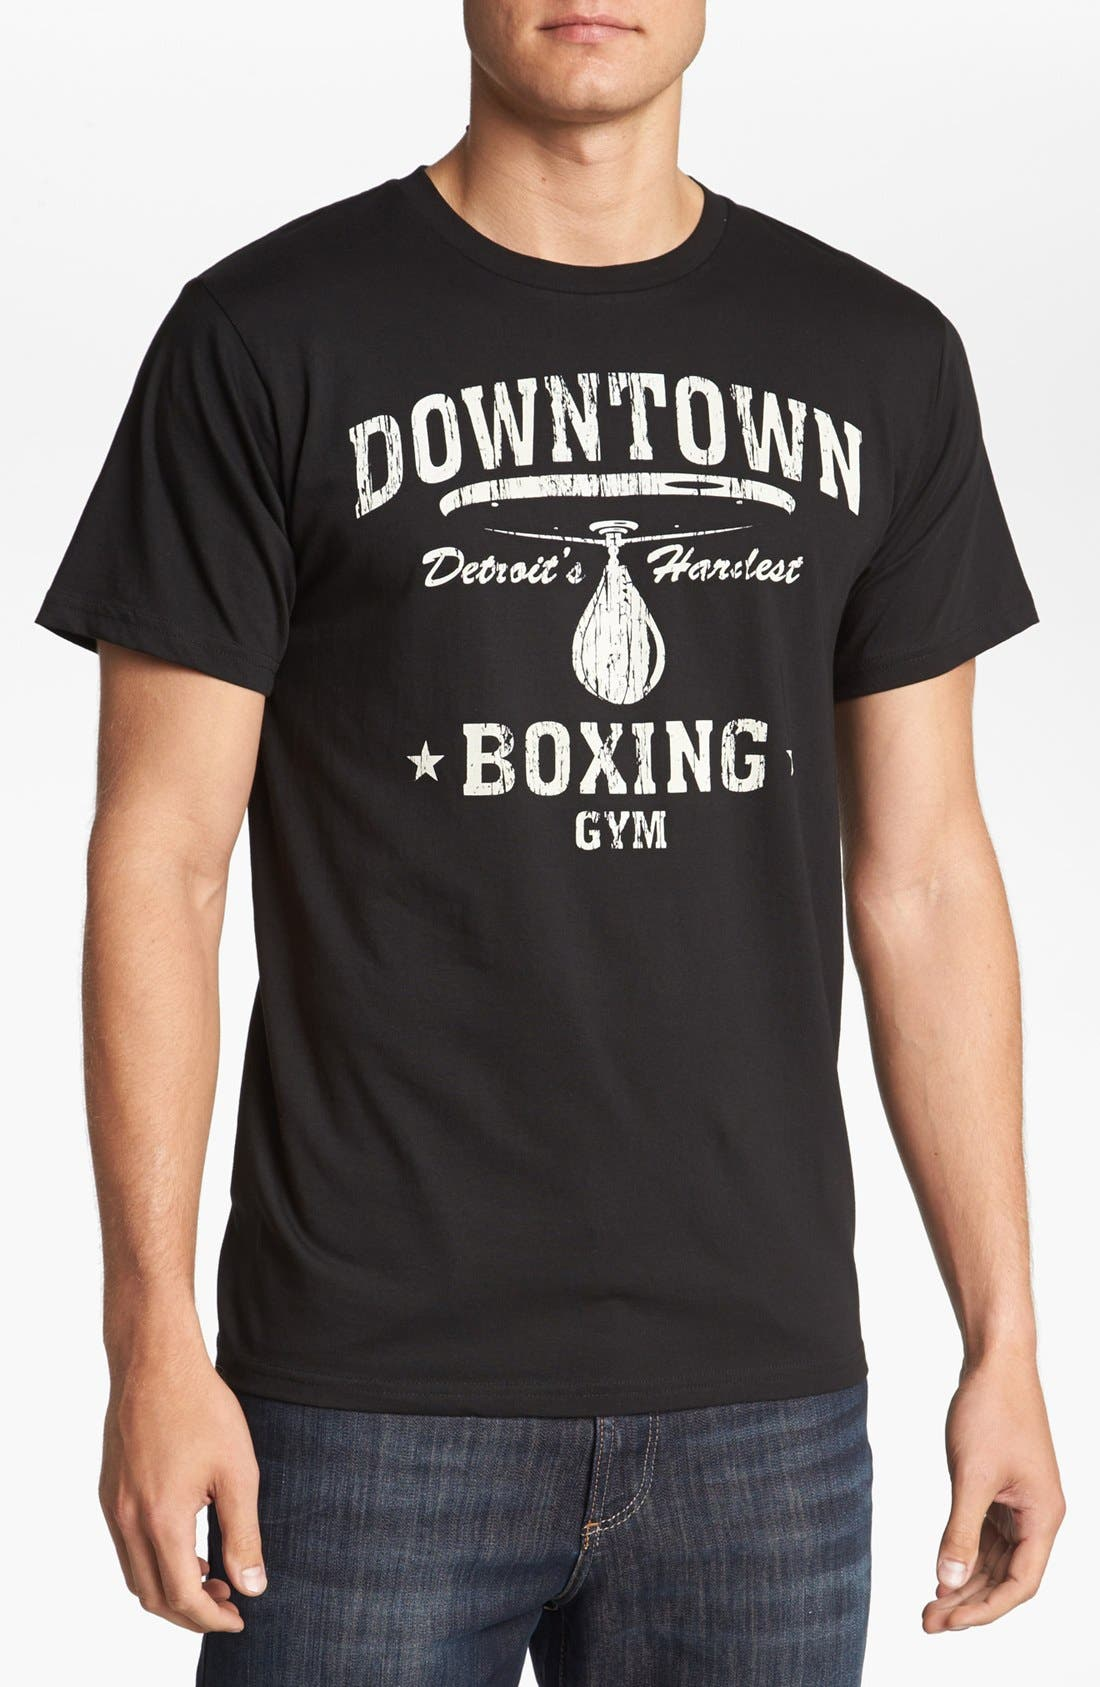 Alternate Image 1 Selected - Horses Cut Shop 'Downtown Boxing Gym' T-Shirt